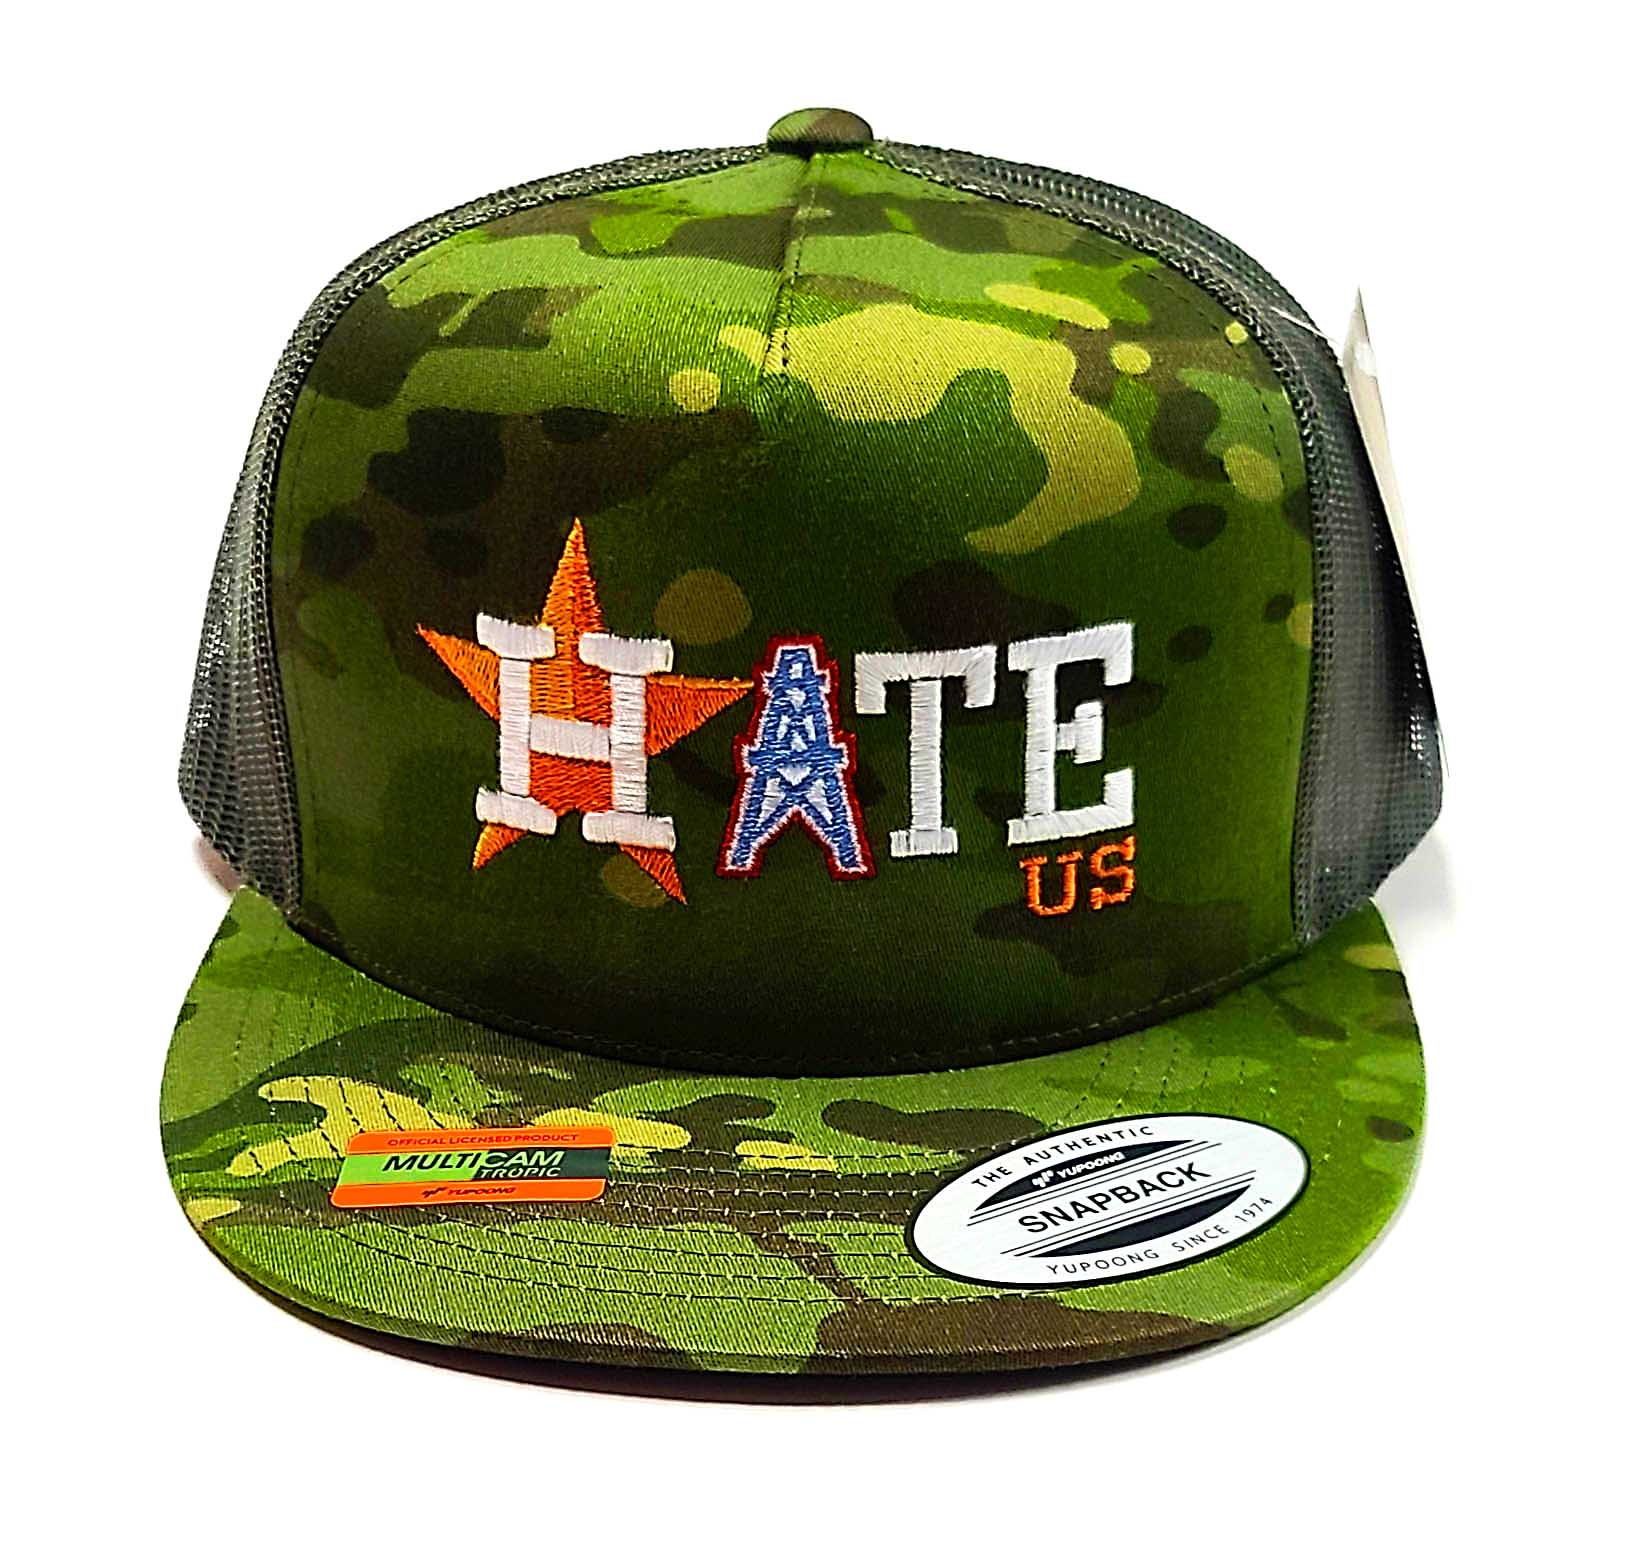 Houston Astros Hate Us Featuring Oilers Derrick on a 5 panel flat bill camo classic trucker cap front view